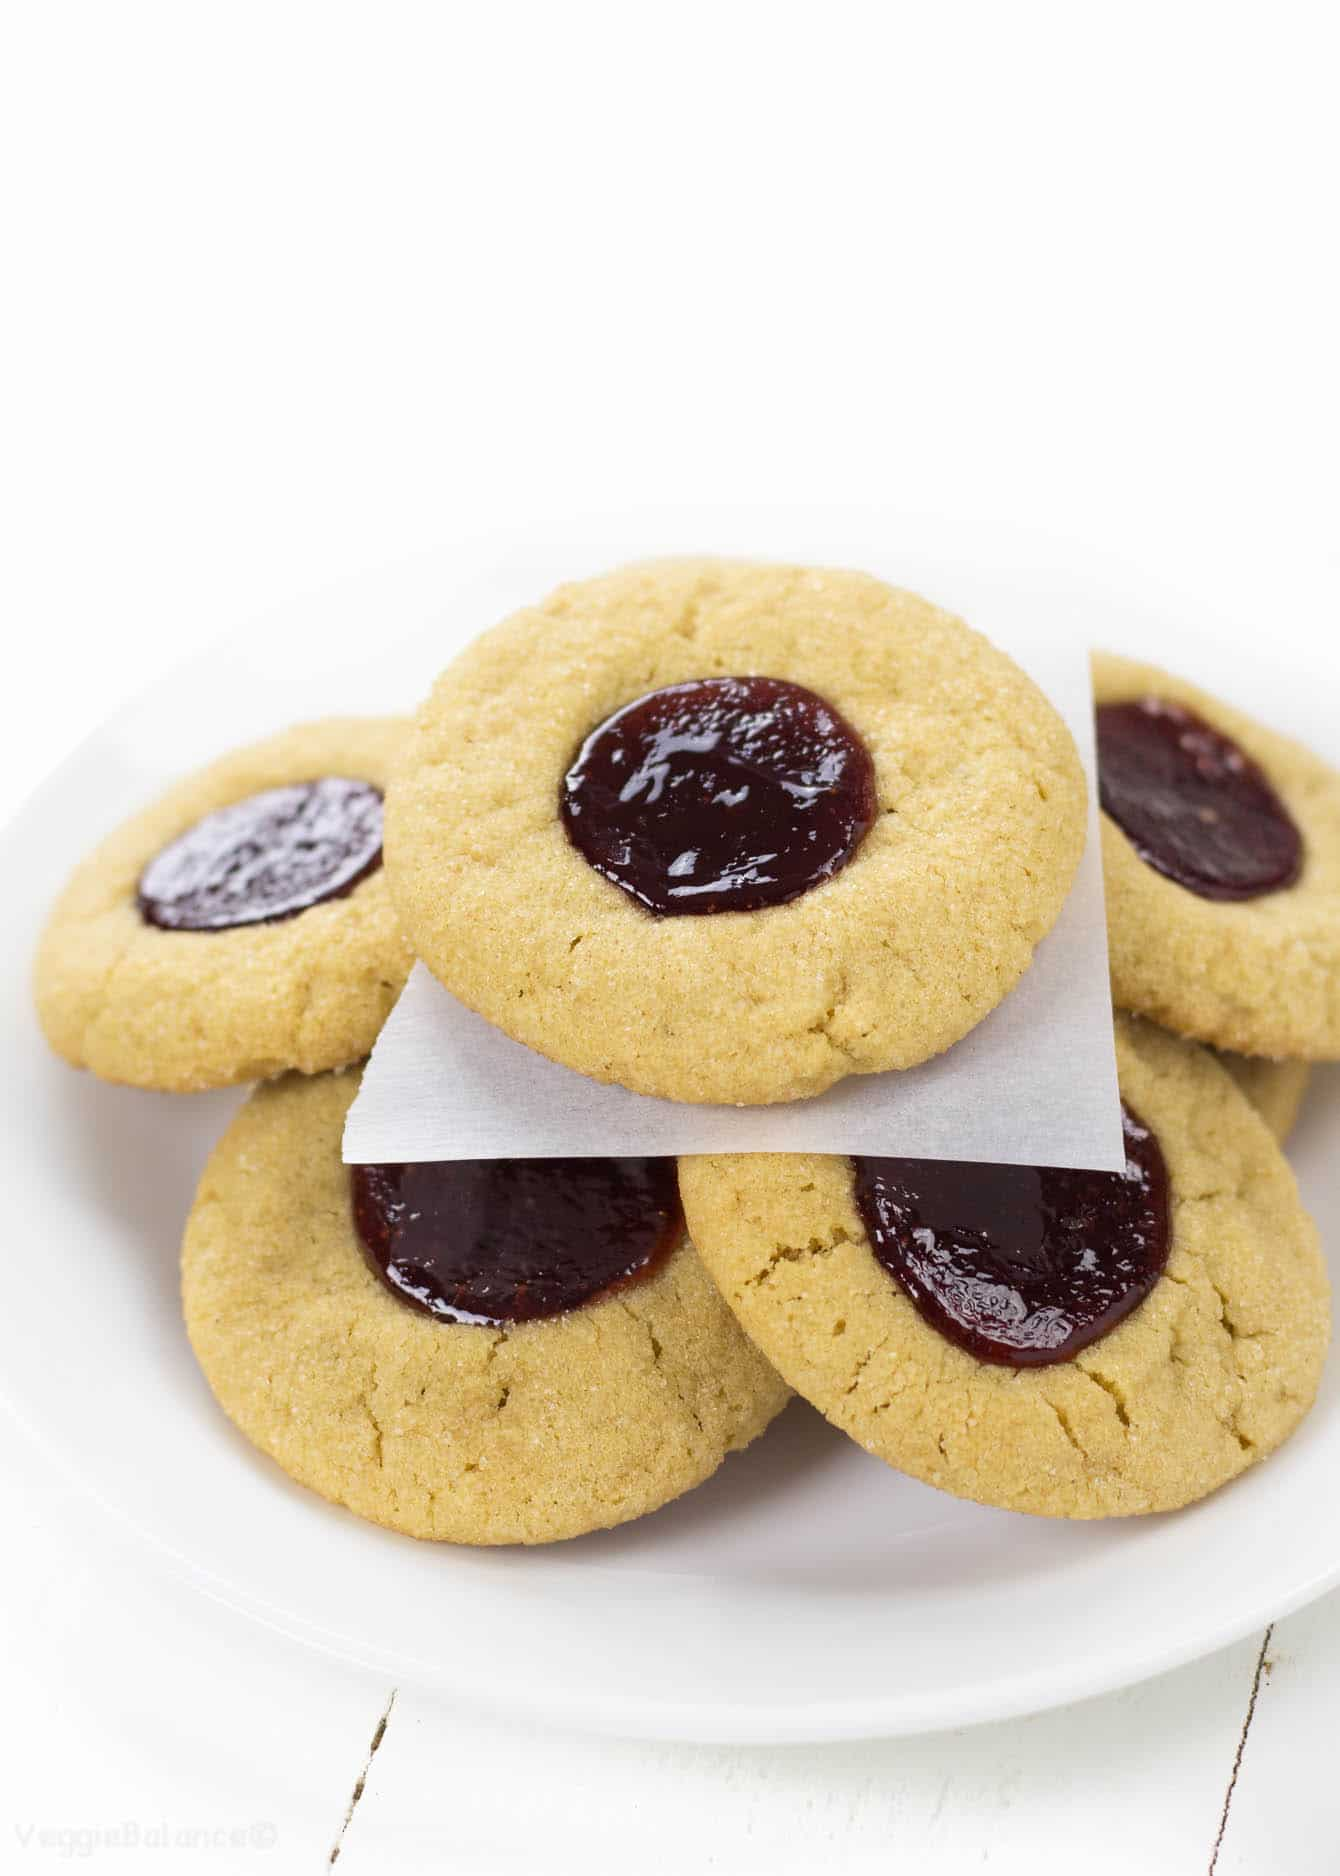 Peanut Butter and Jelly Thumbprint Cookies - Veggiebalance.com